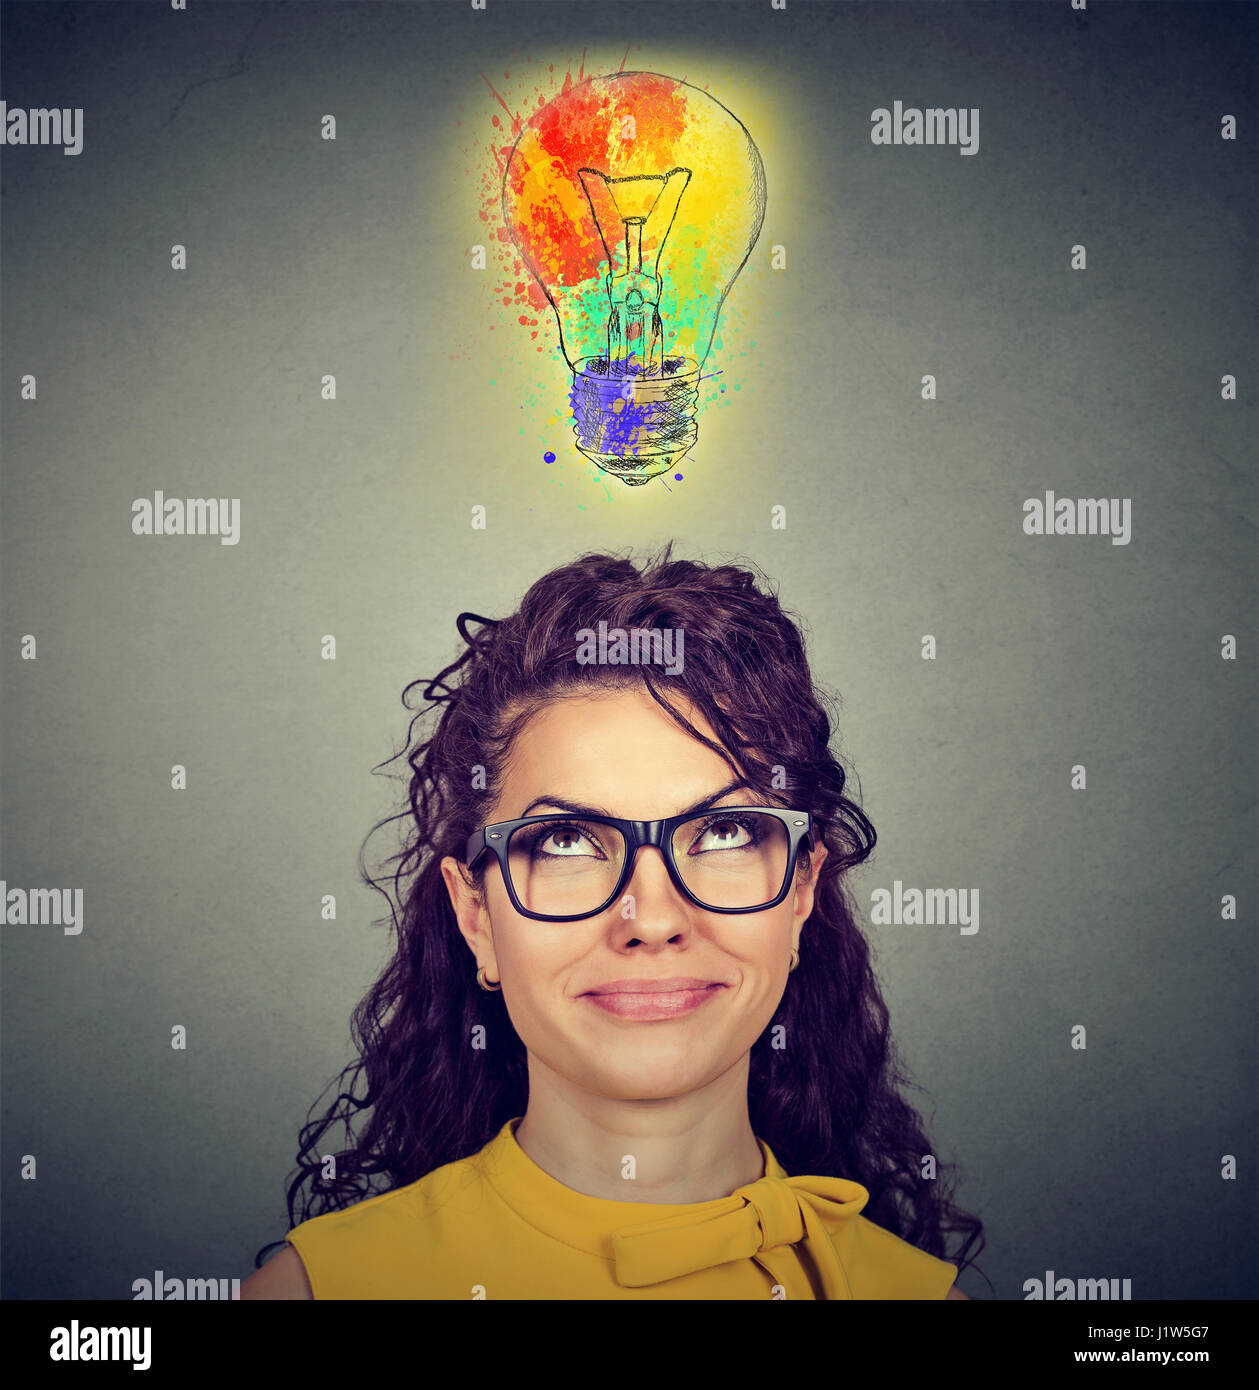 Portrait of a woman with glasses and creative idea looking up at colorful light bulb on gray wall background. Inspiration - Stock Image